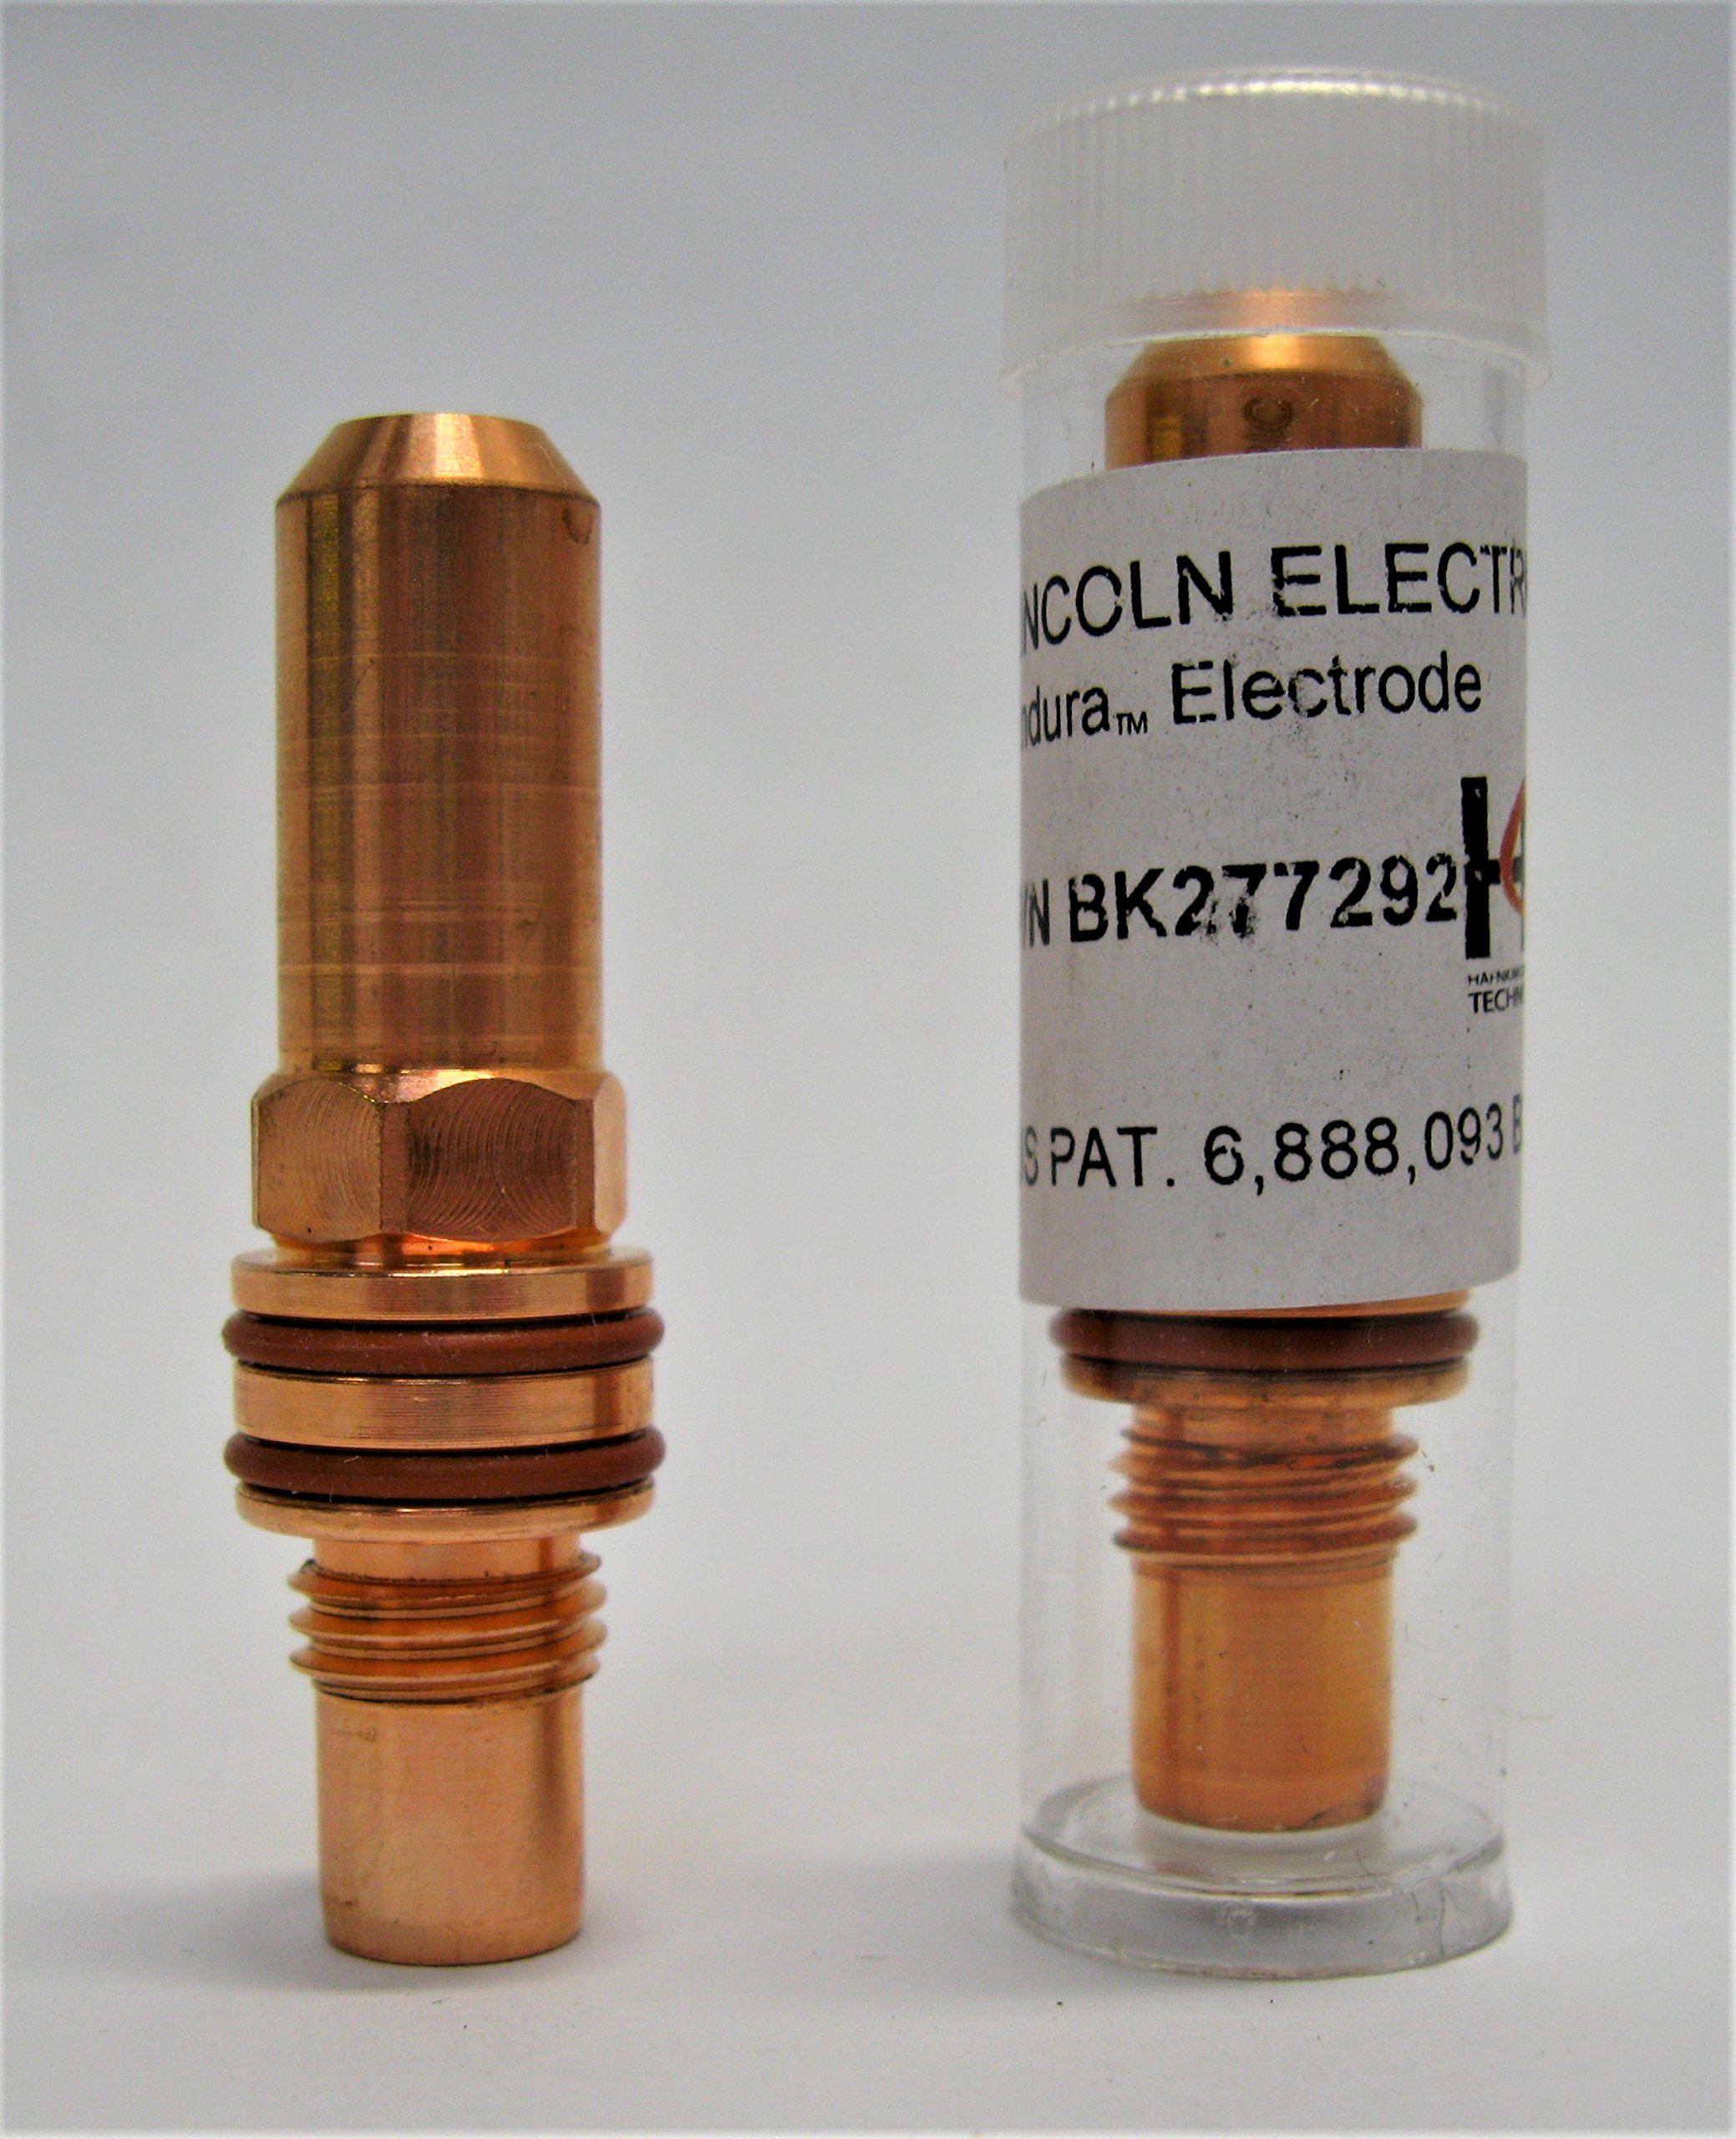 Copper Electrode - 150A - BK277292 (MILD STEEL, STAINLESS STEEL-AIR, ALUMINUM)